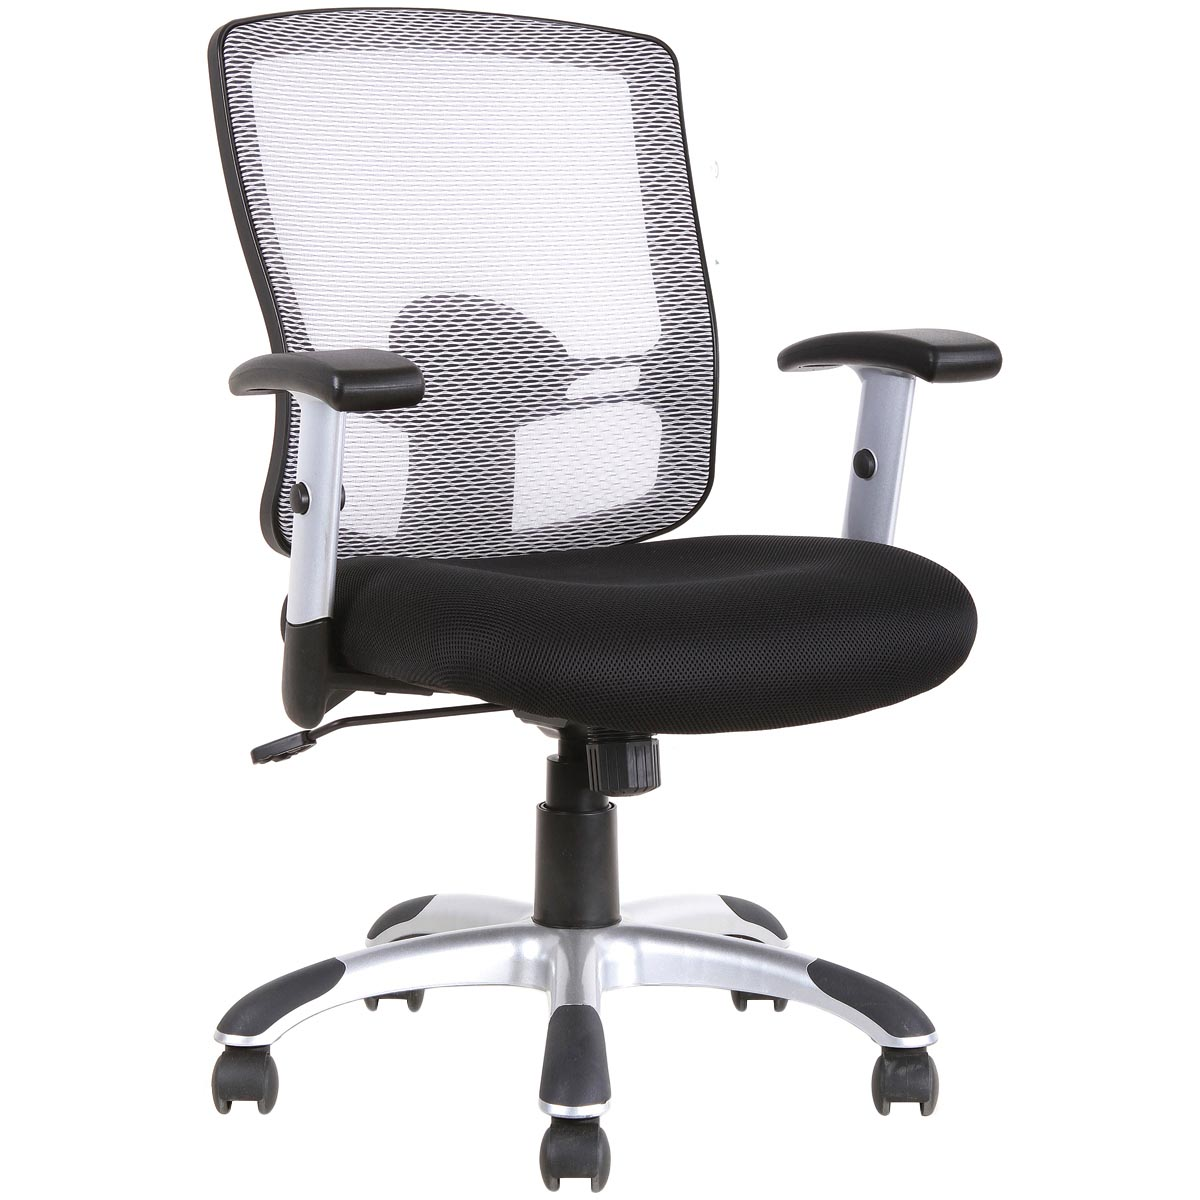 ofm posture task chair folding concert lawn chairs office and schoolsin